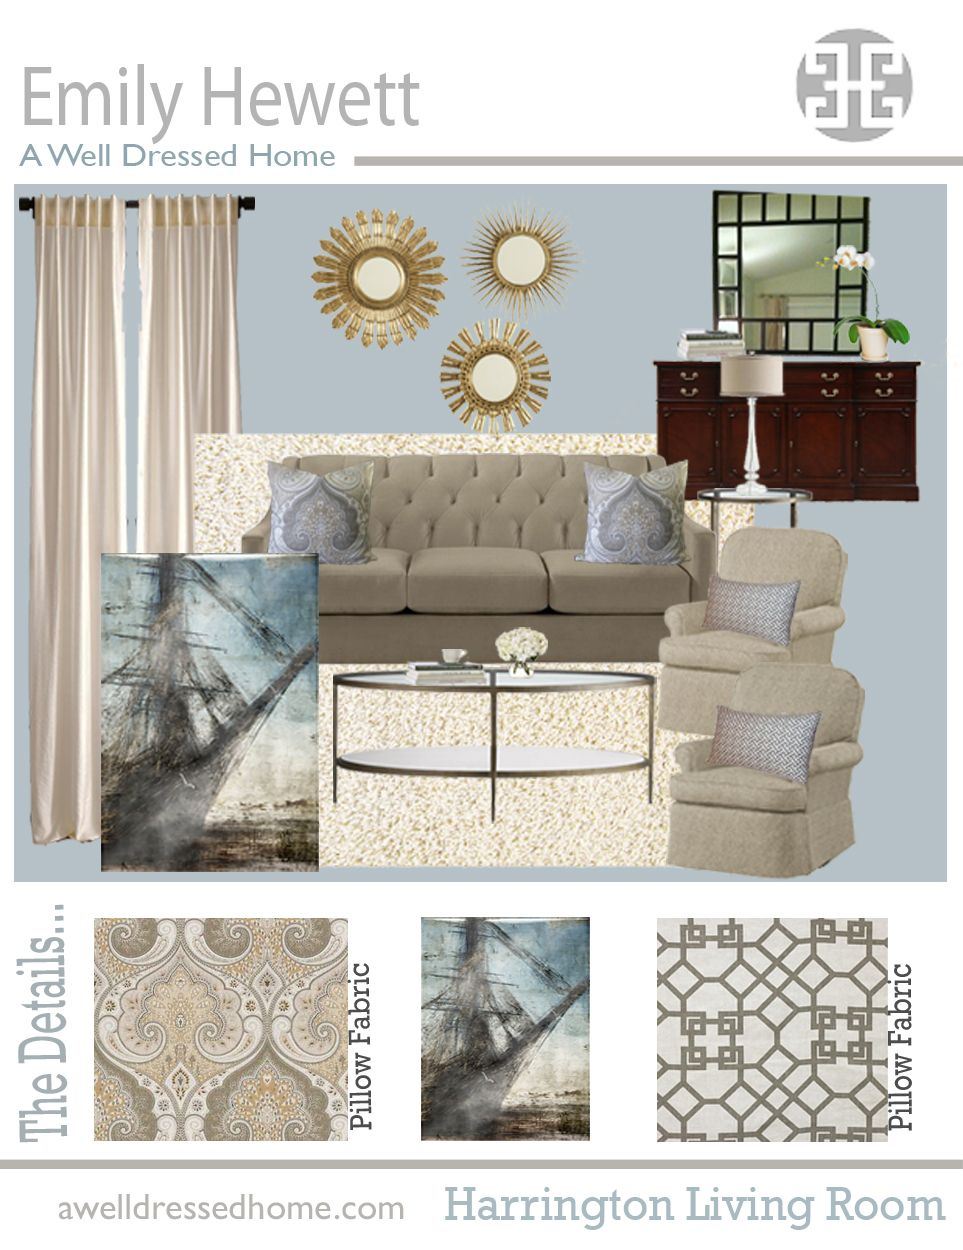 Design Rooms Online Harrington Living Room Online Design Board By Emily Hewett Of A